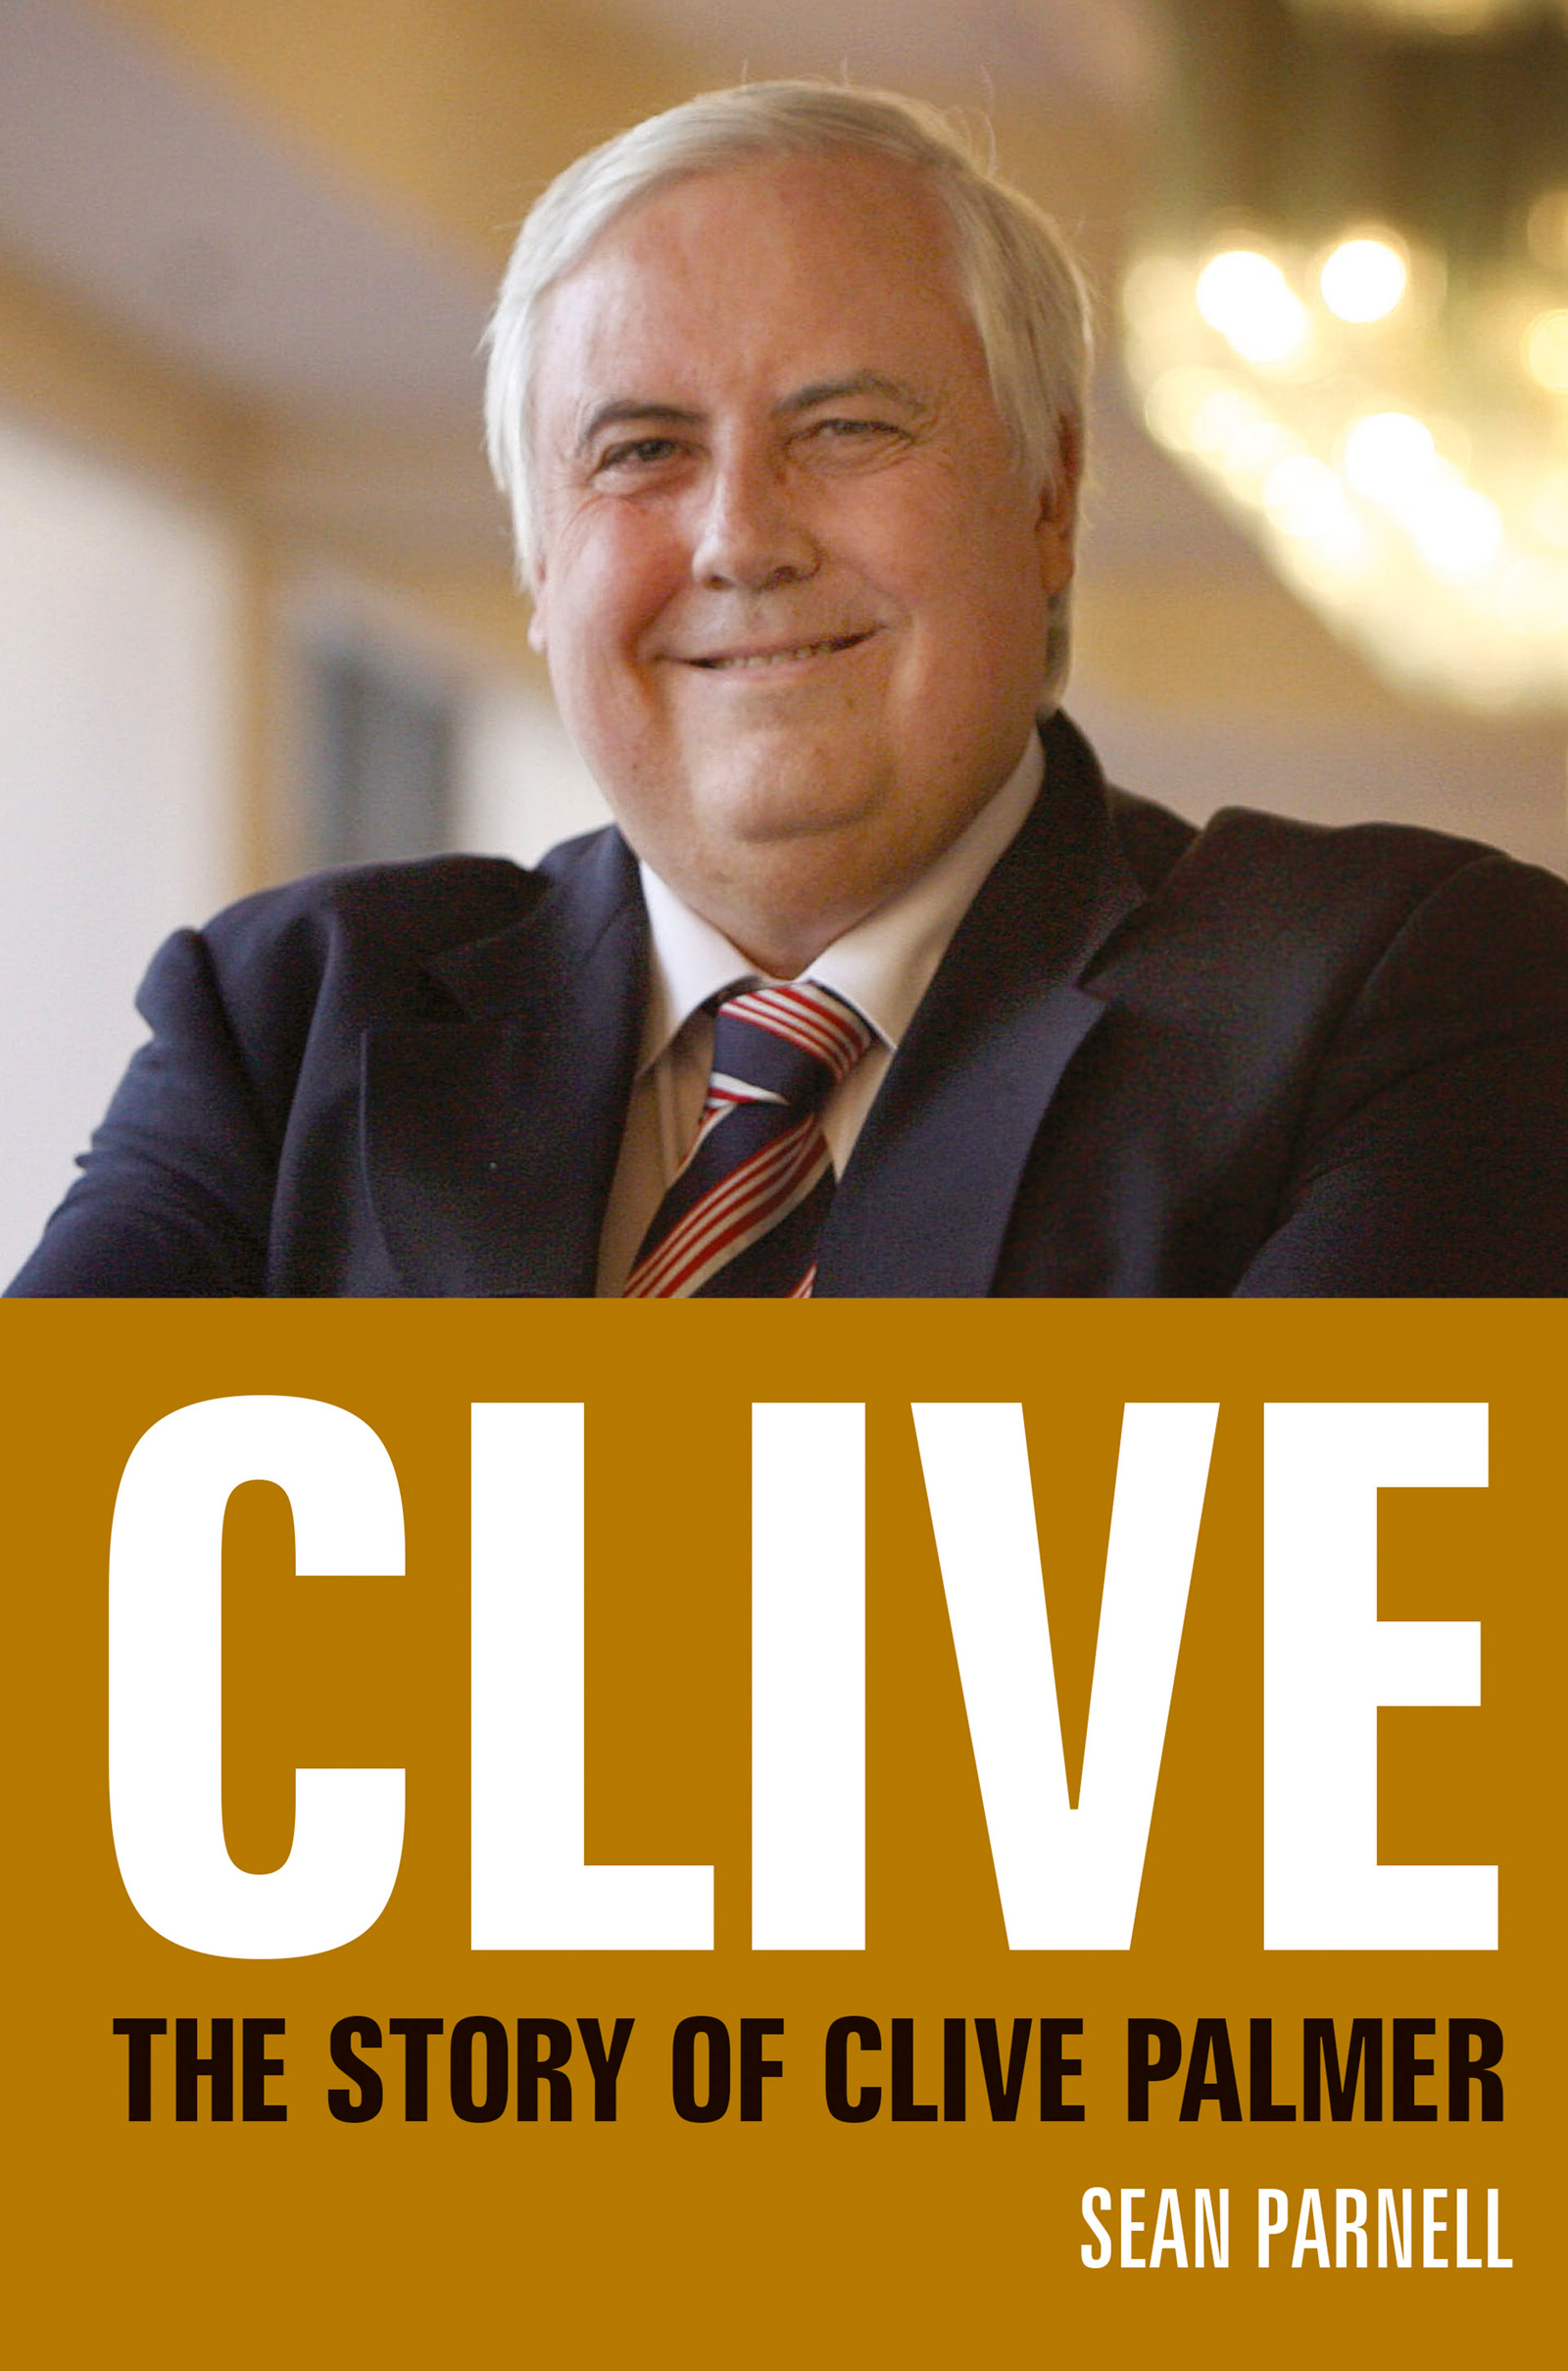 Clive: The story of Clive Palmer